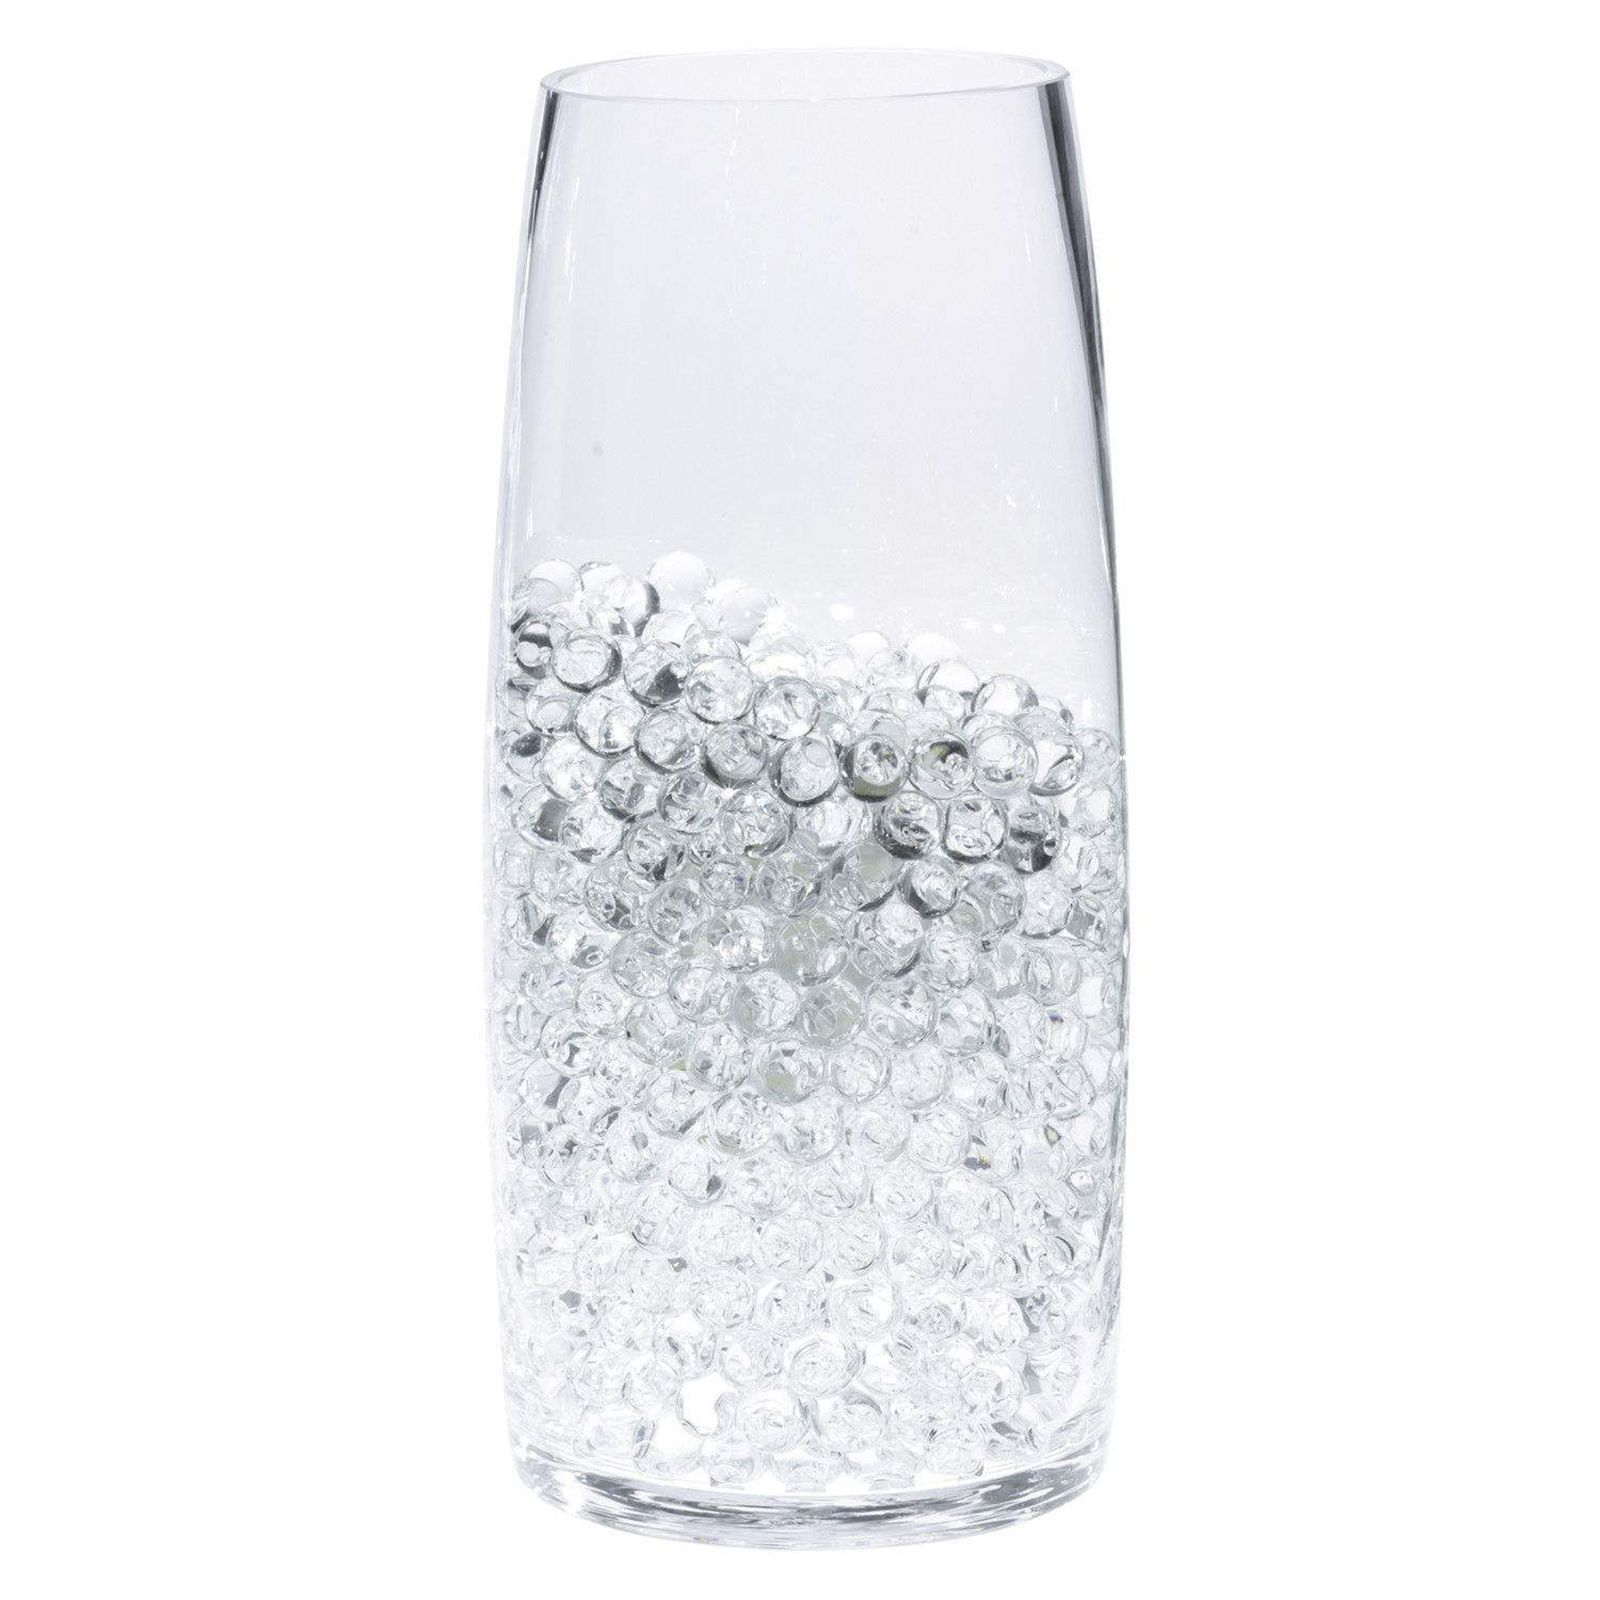 Details About 1lb Clear Water Pearl Beads Centerpiece Decor Wedding Tower Vase Filler In 2020 Water Beads Vase Fillers How To Make Beads